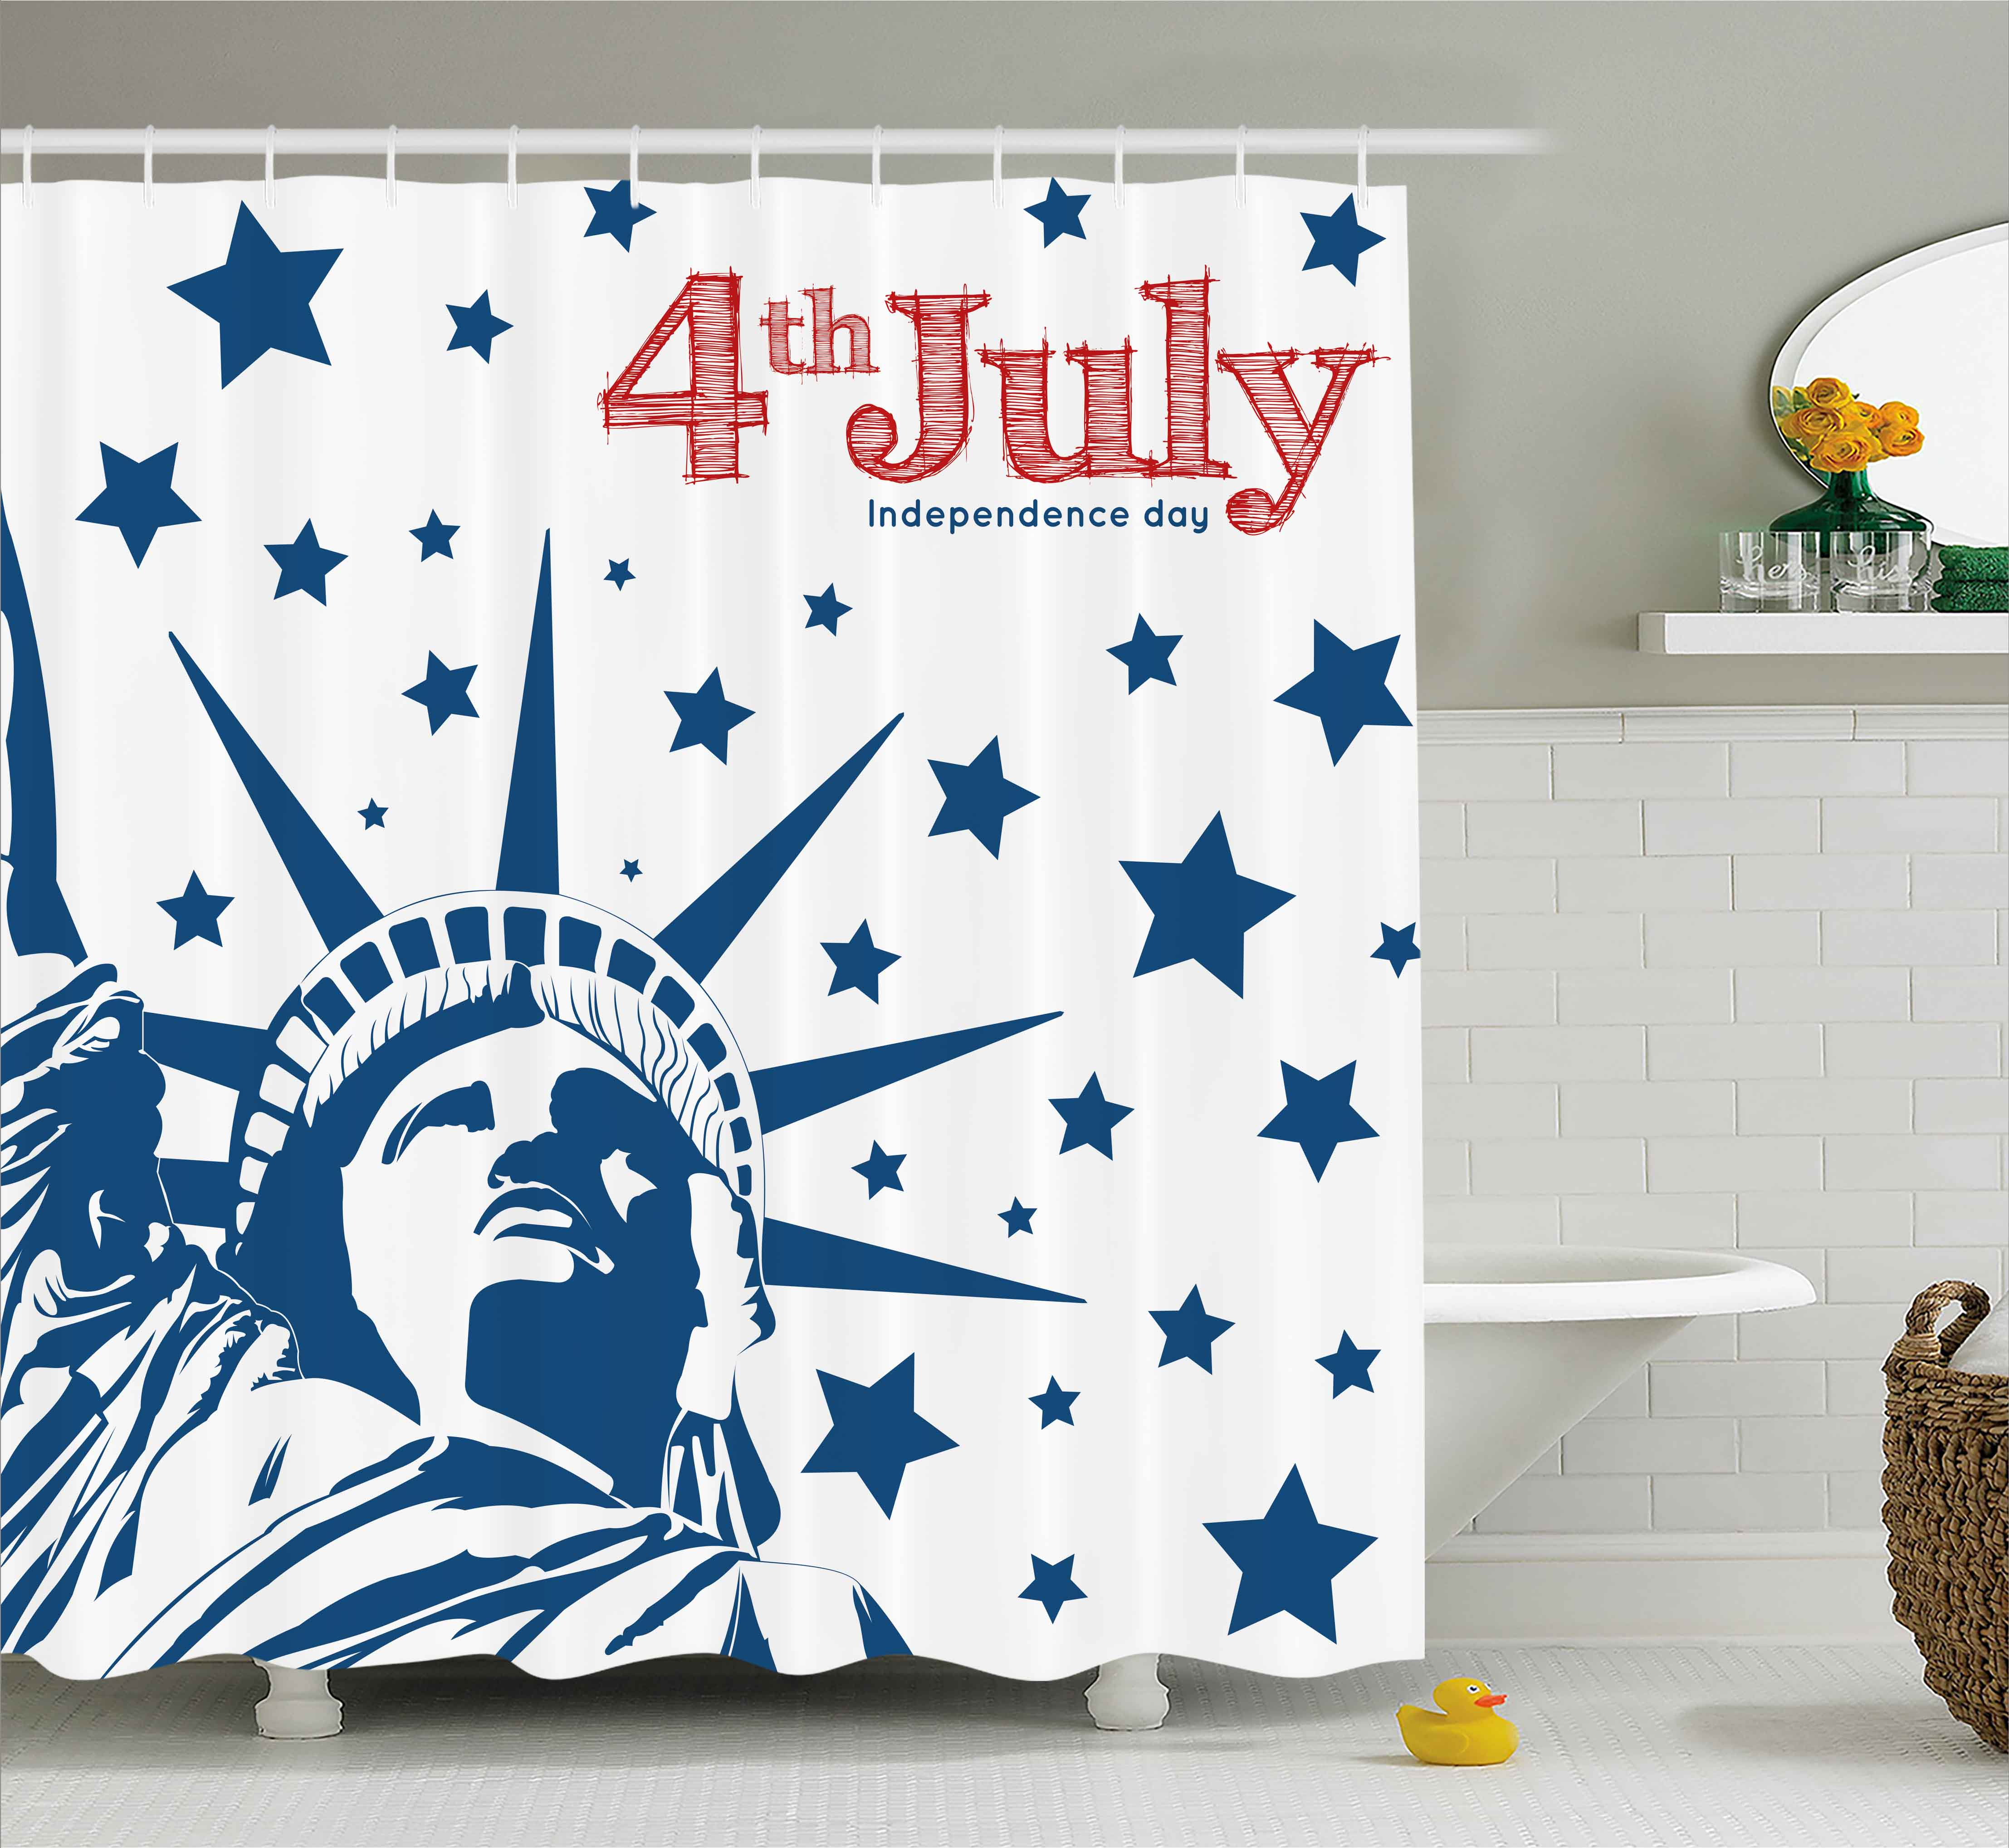 4th of July Decor Shower Curtain, Murky Old American Flag Background with Stars Abstract US Artful Image, Fabric Bathroom Set with Hooks, 69W X 84L Inches Extra Long, Blue Red, by Ambesonne